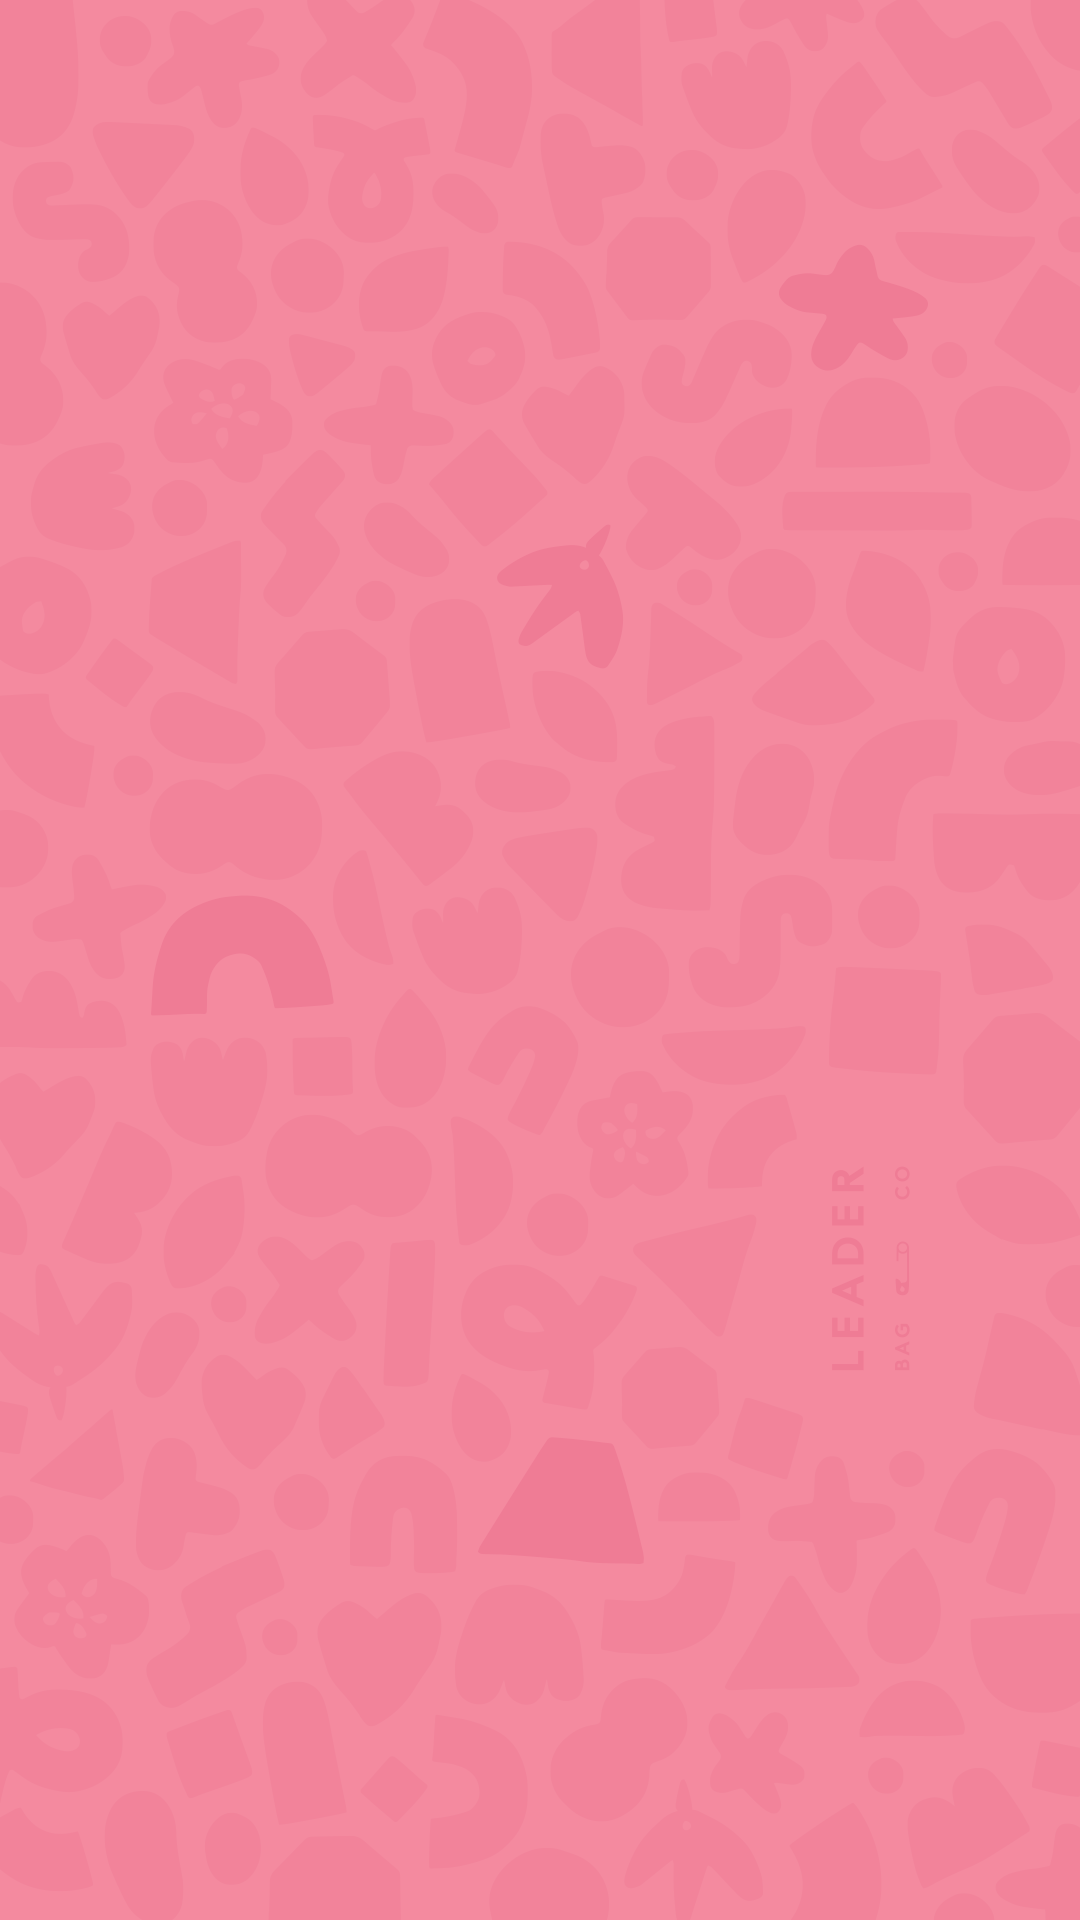 Meta Wallpaper — Pink Desktop